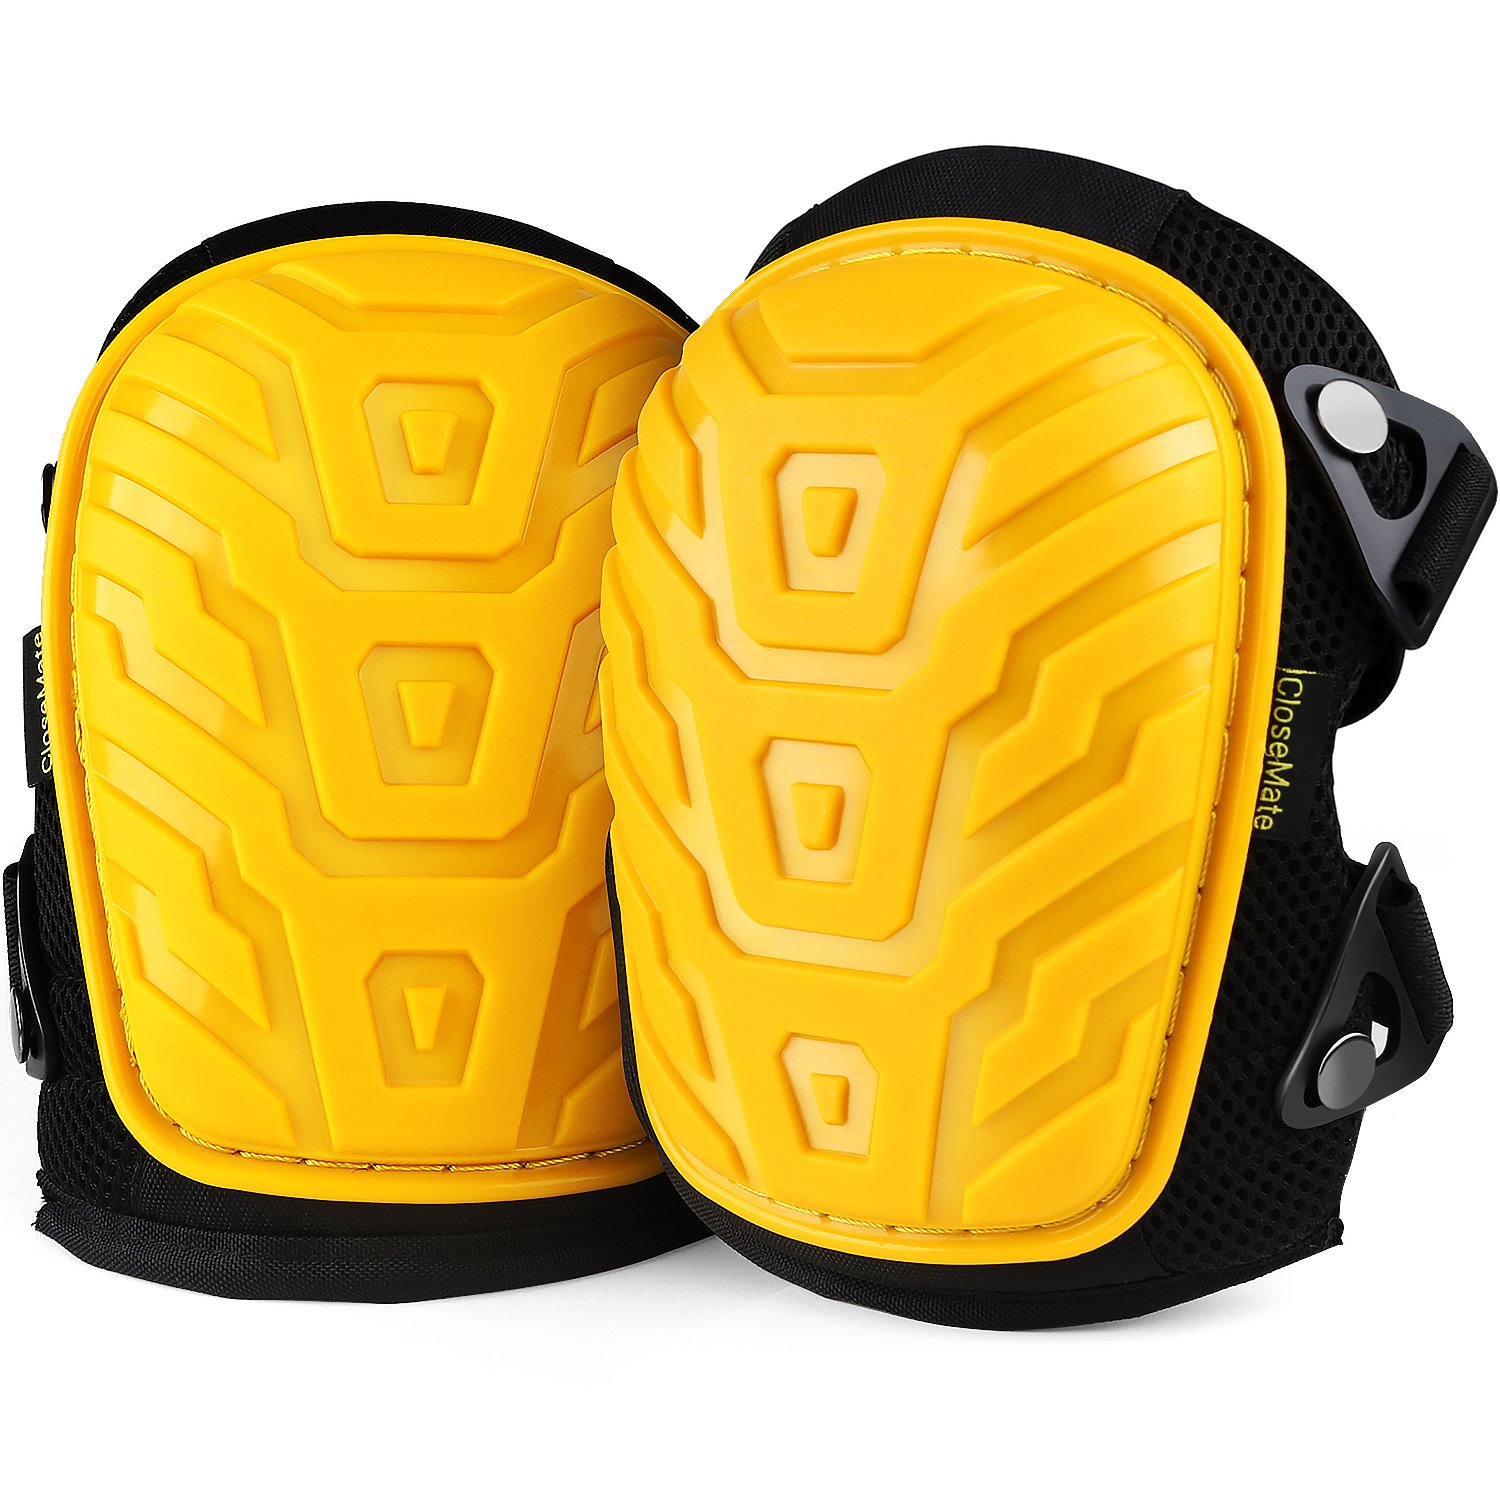 Closemate Anti-Slip Knee Pads for Work, with Cozy Gel and EVA Foam Cushion, Designed for Gardening, Cleaning, Construction, Flooring and Carpeting, Professional Knee Protector by Closemate